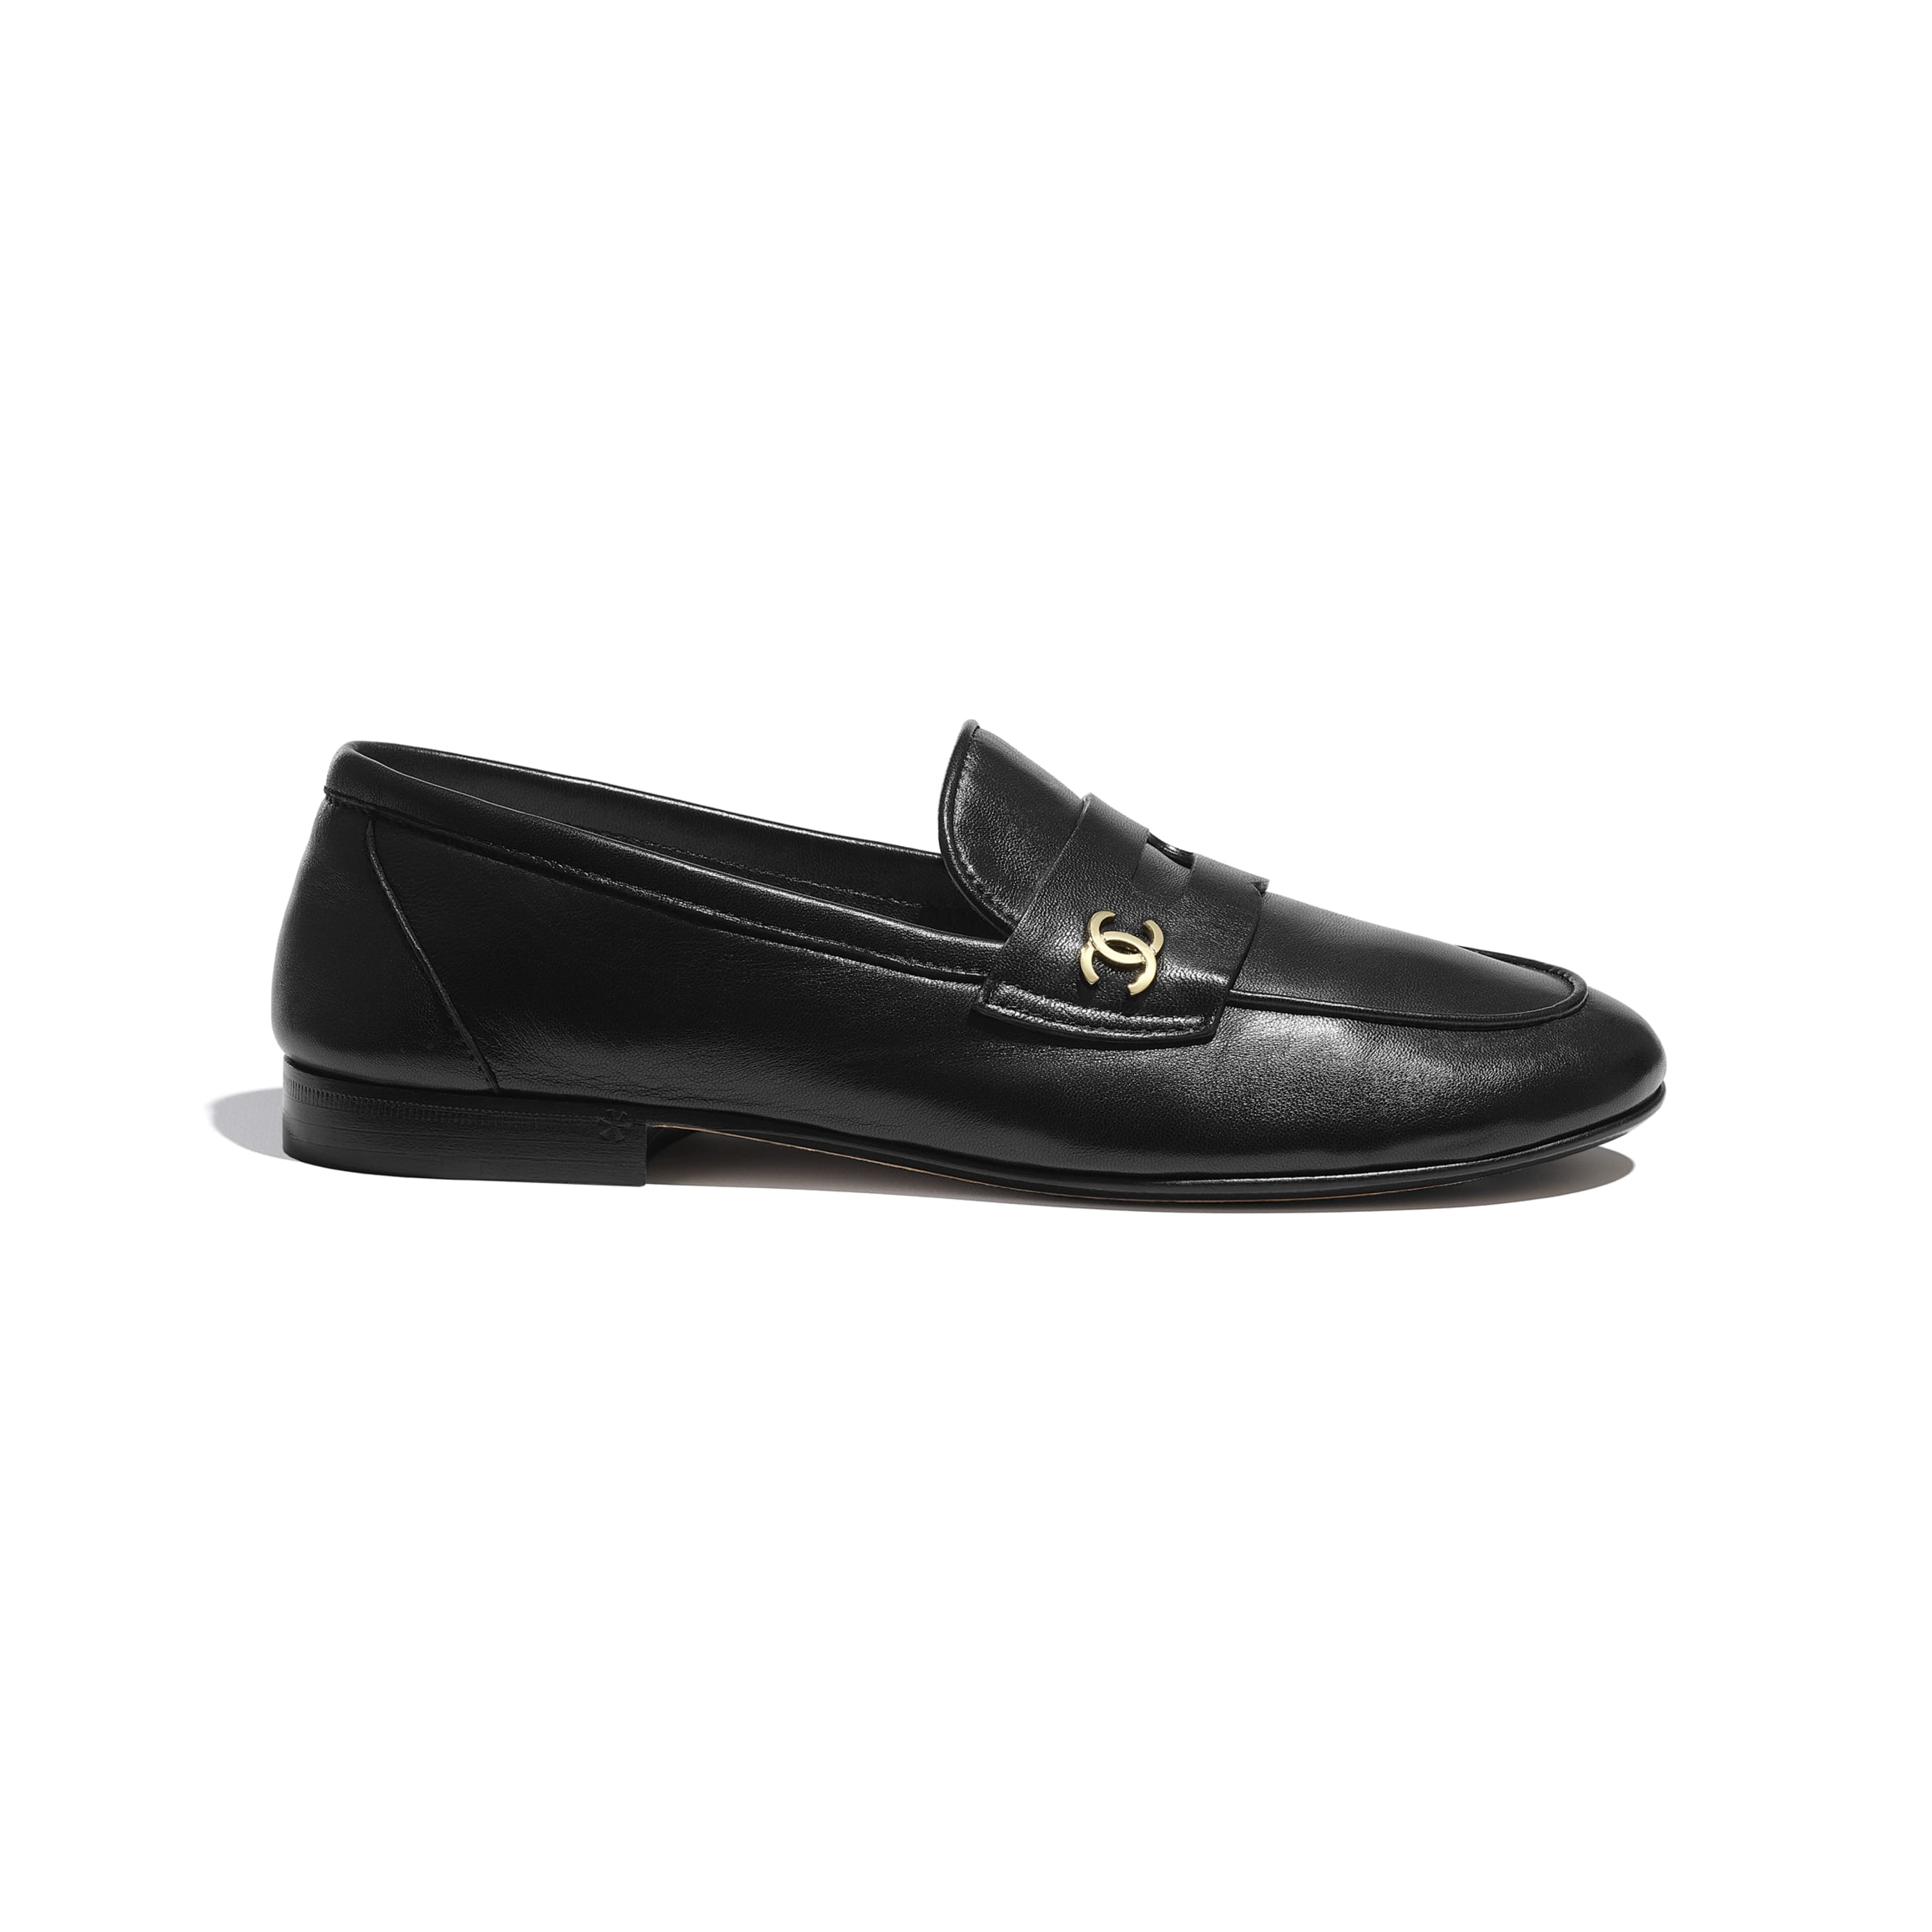 Loafers - Black - Lambskin - CHANEL - Default view - see standard sized version